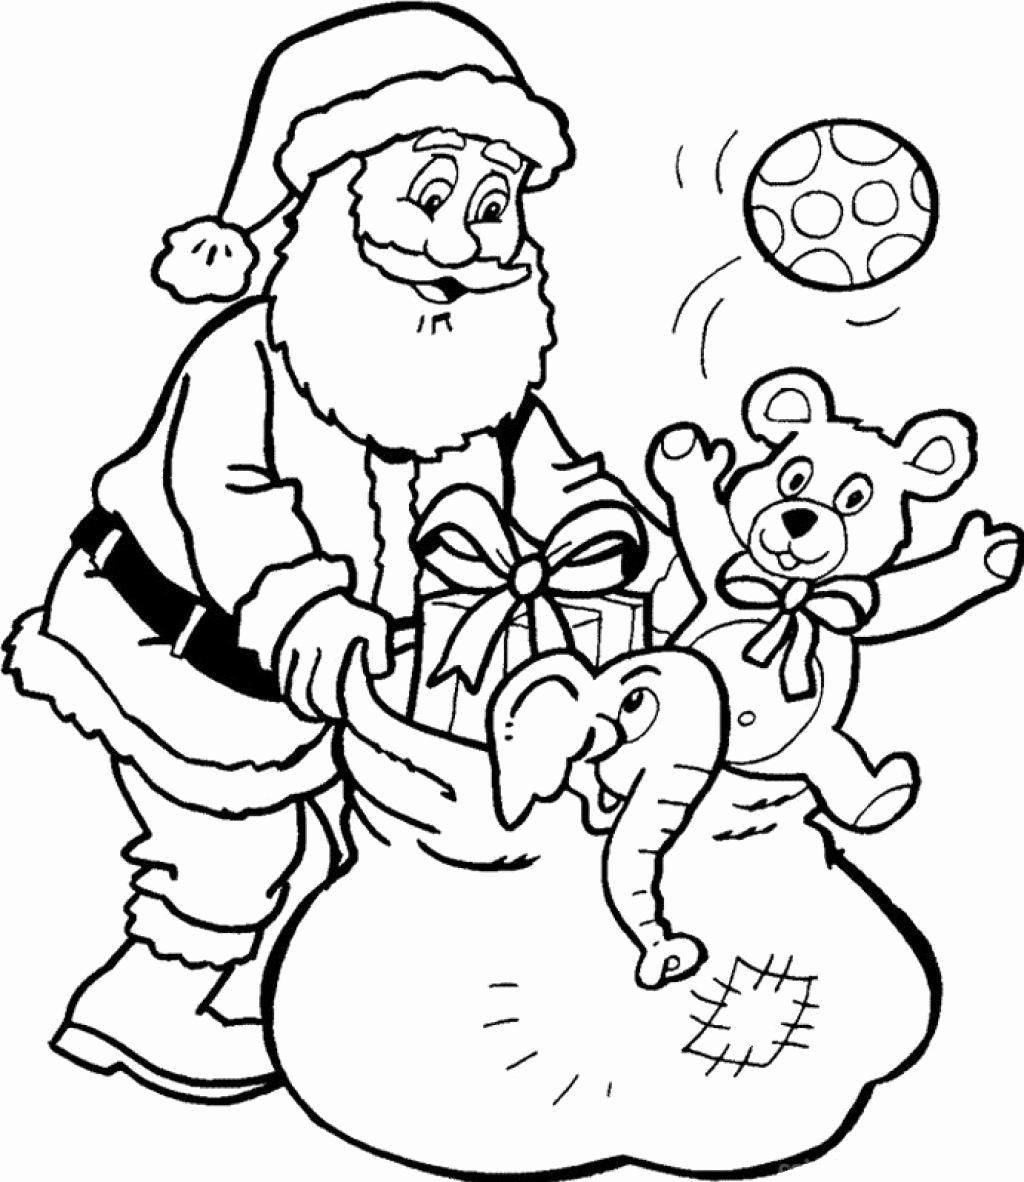 Printable Santa Coloring Pages Elegant Printable Santa Claus Coloring Pag Santa Coloring Pages Printable Christmas Coloring Pages Free Christmas Coloring Pages